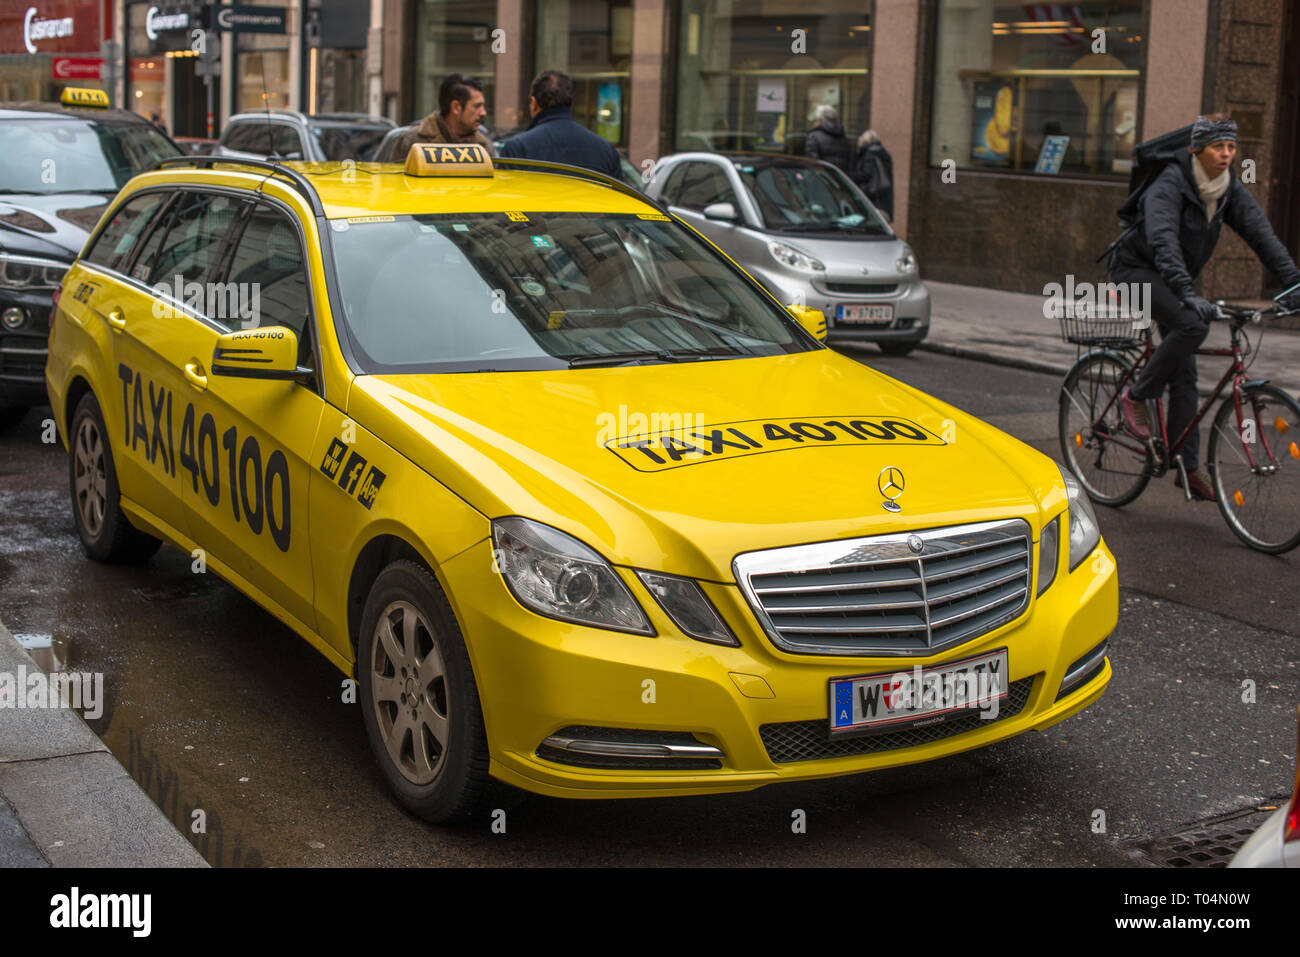 Yellow taxicab in Vienna city centre, Austria. - Stock Image